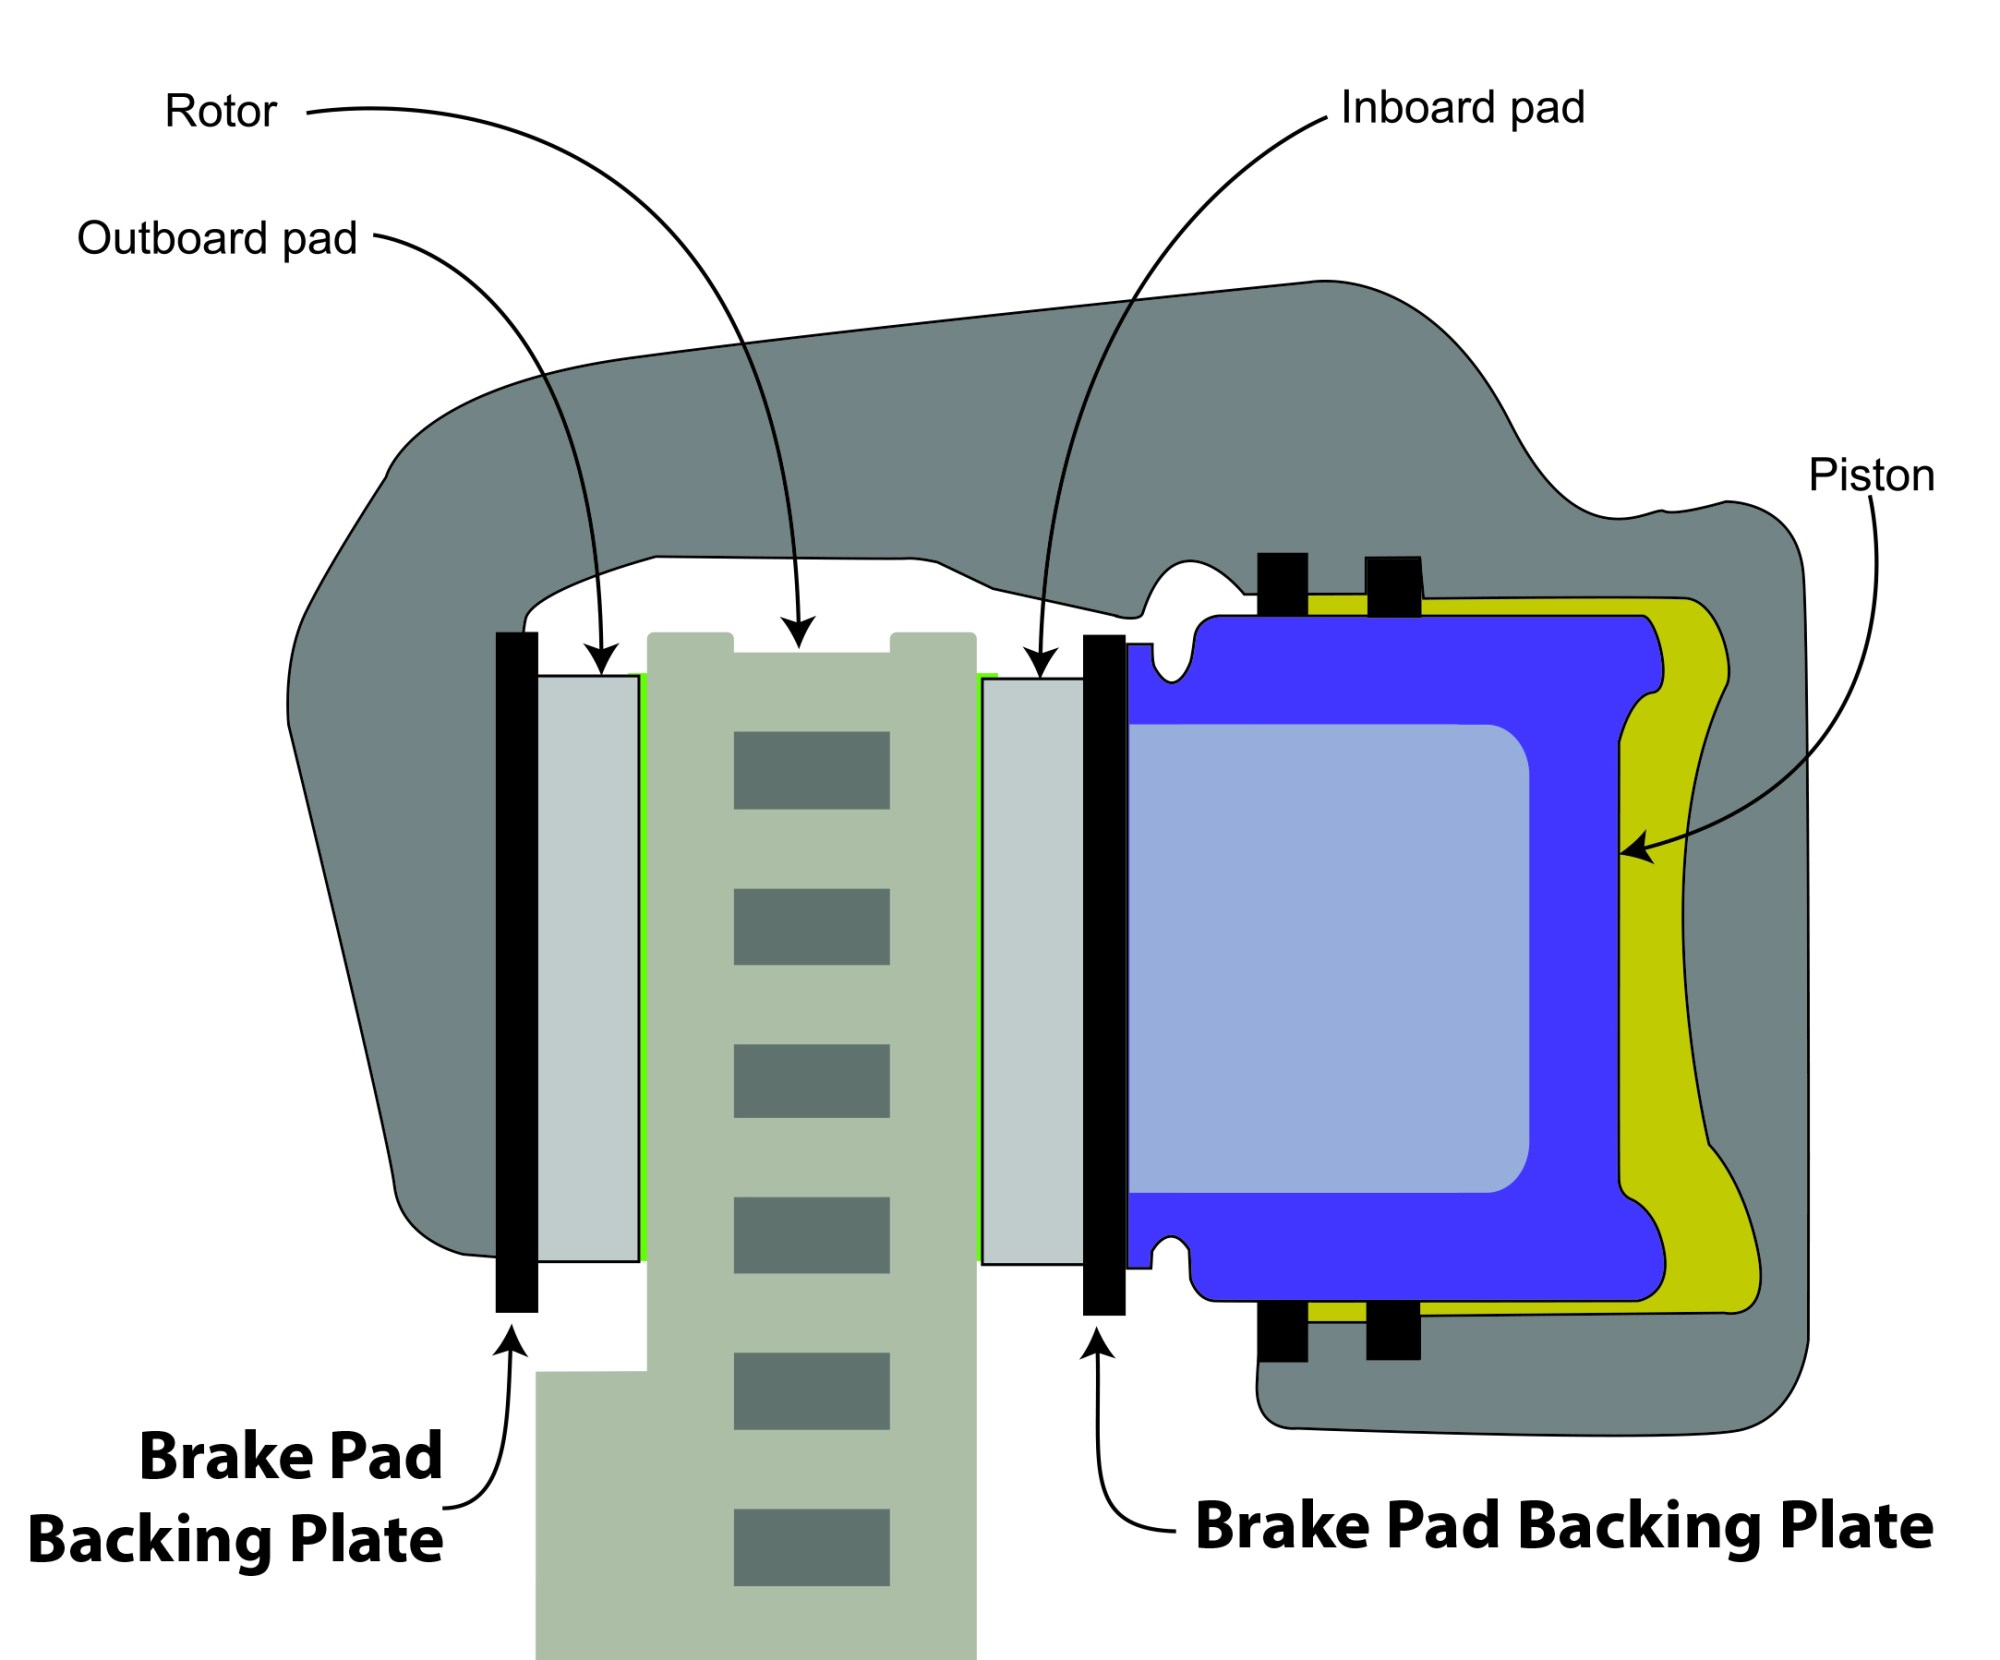 hight resolution of brake pad backing plate ricks free auto repair advice ricks free auto repair advice automotive repair tips and how to